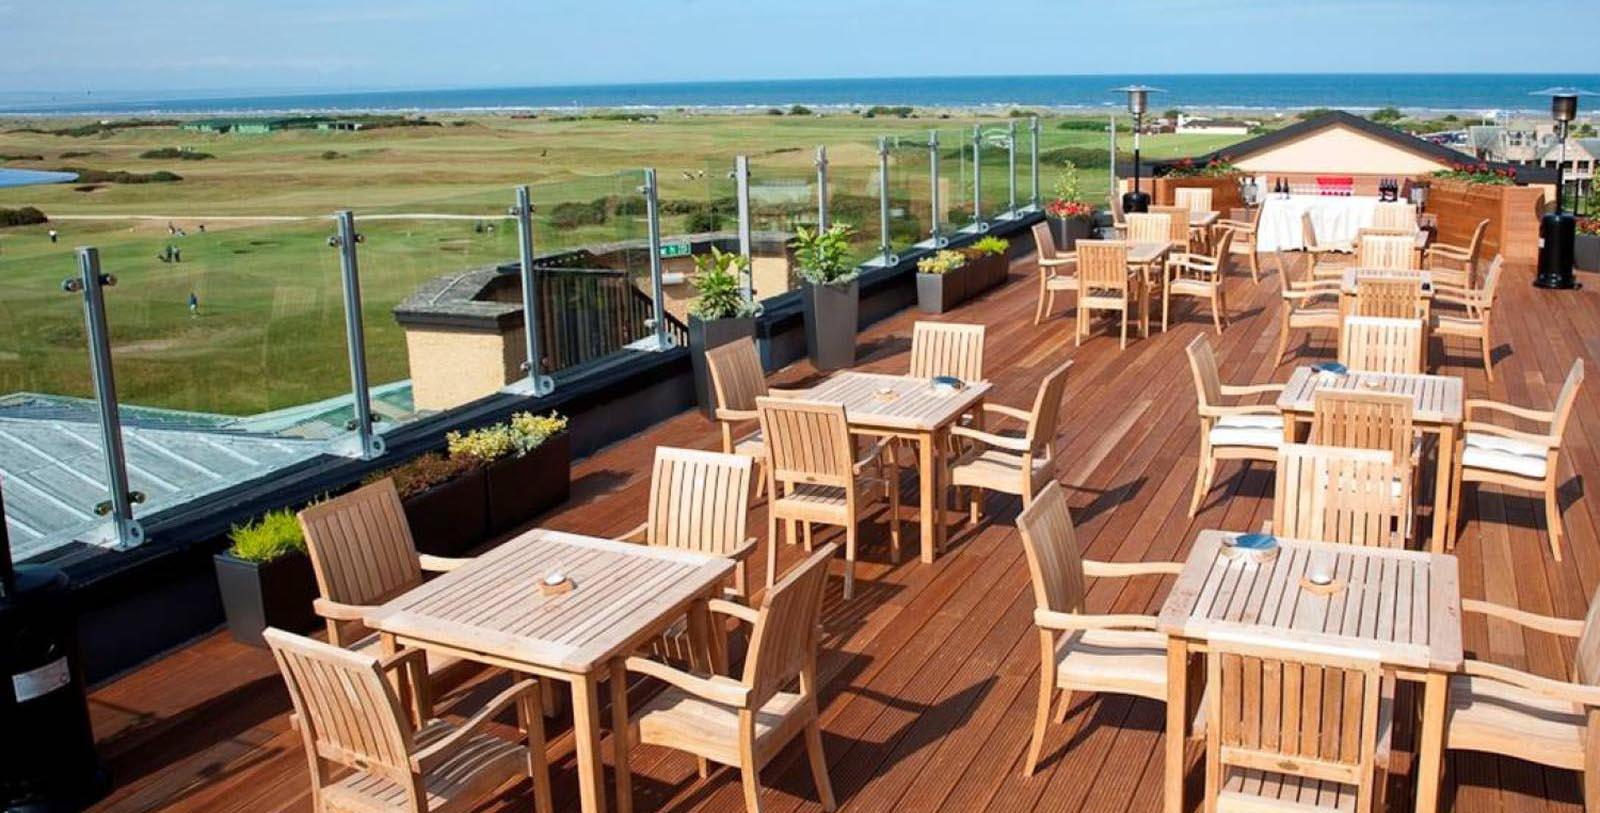 Image of Outdoor Dining Area Old Course Hotel, Golf Resort & Spa, 15th Century, Member of Historic Hotels Worldwide, in St. Andrews, Scotland, Experience